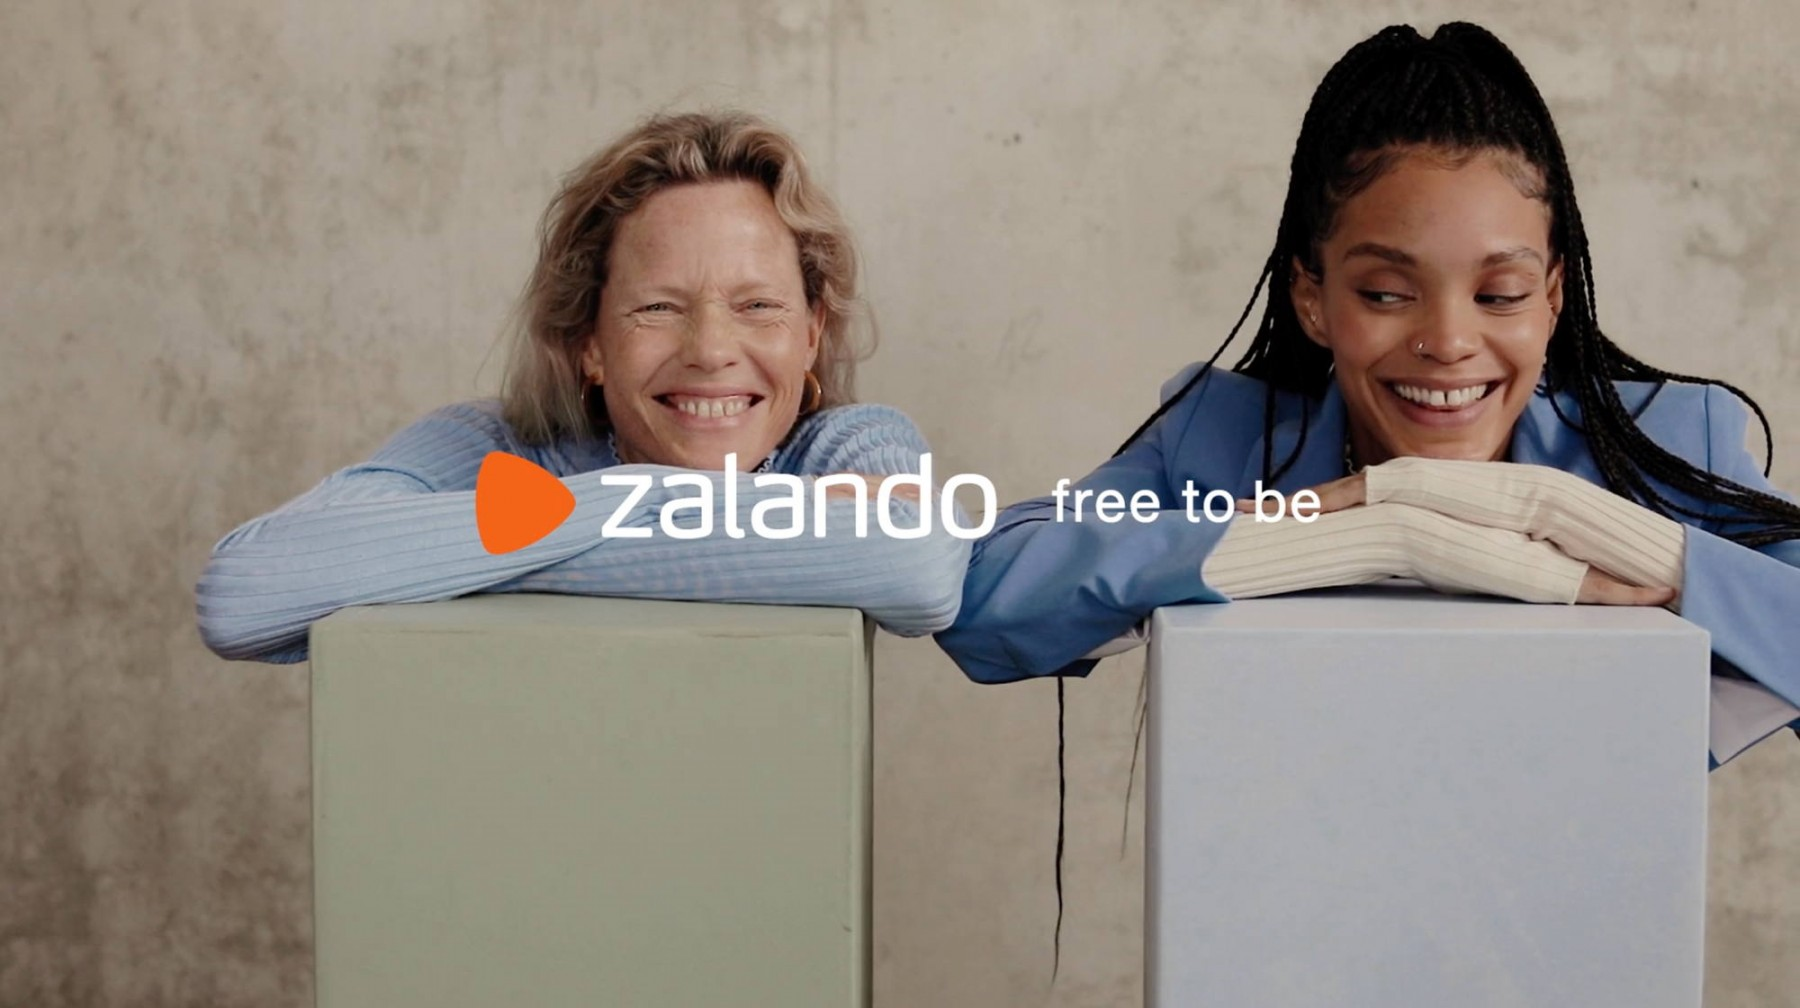 Zalando Sustainable Campaign by KAPTURING represented by stoever artists